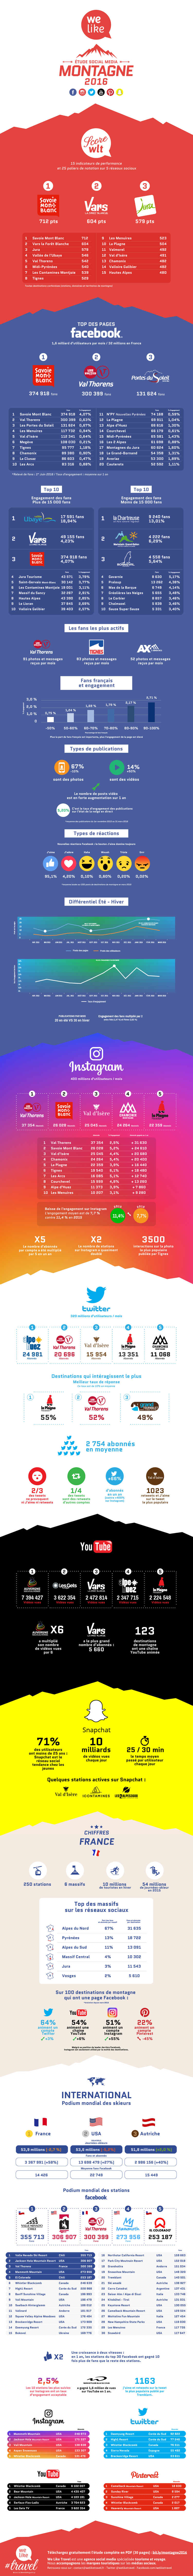 Infographie-montagne-weliketravel-2016